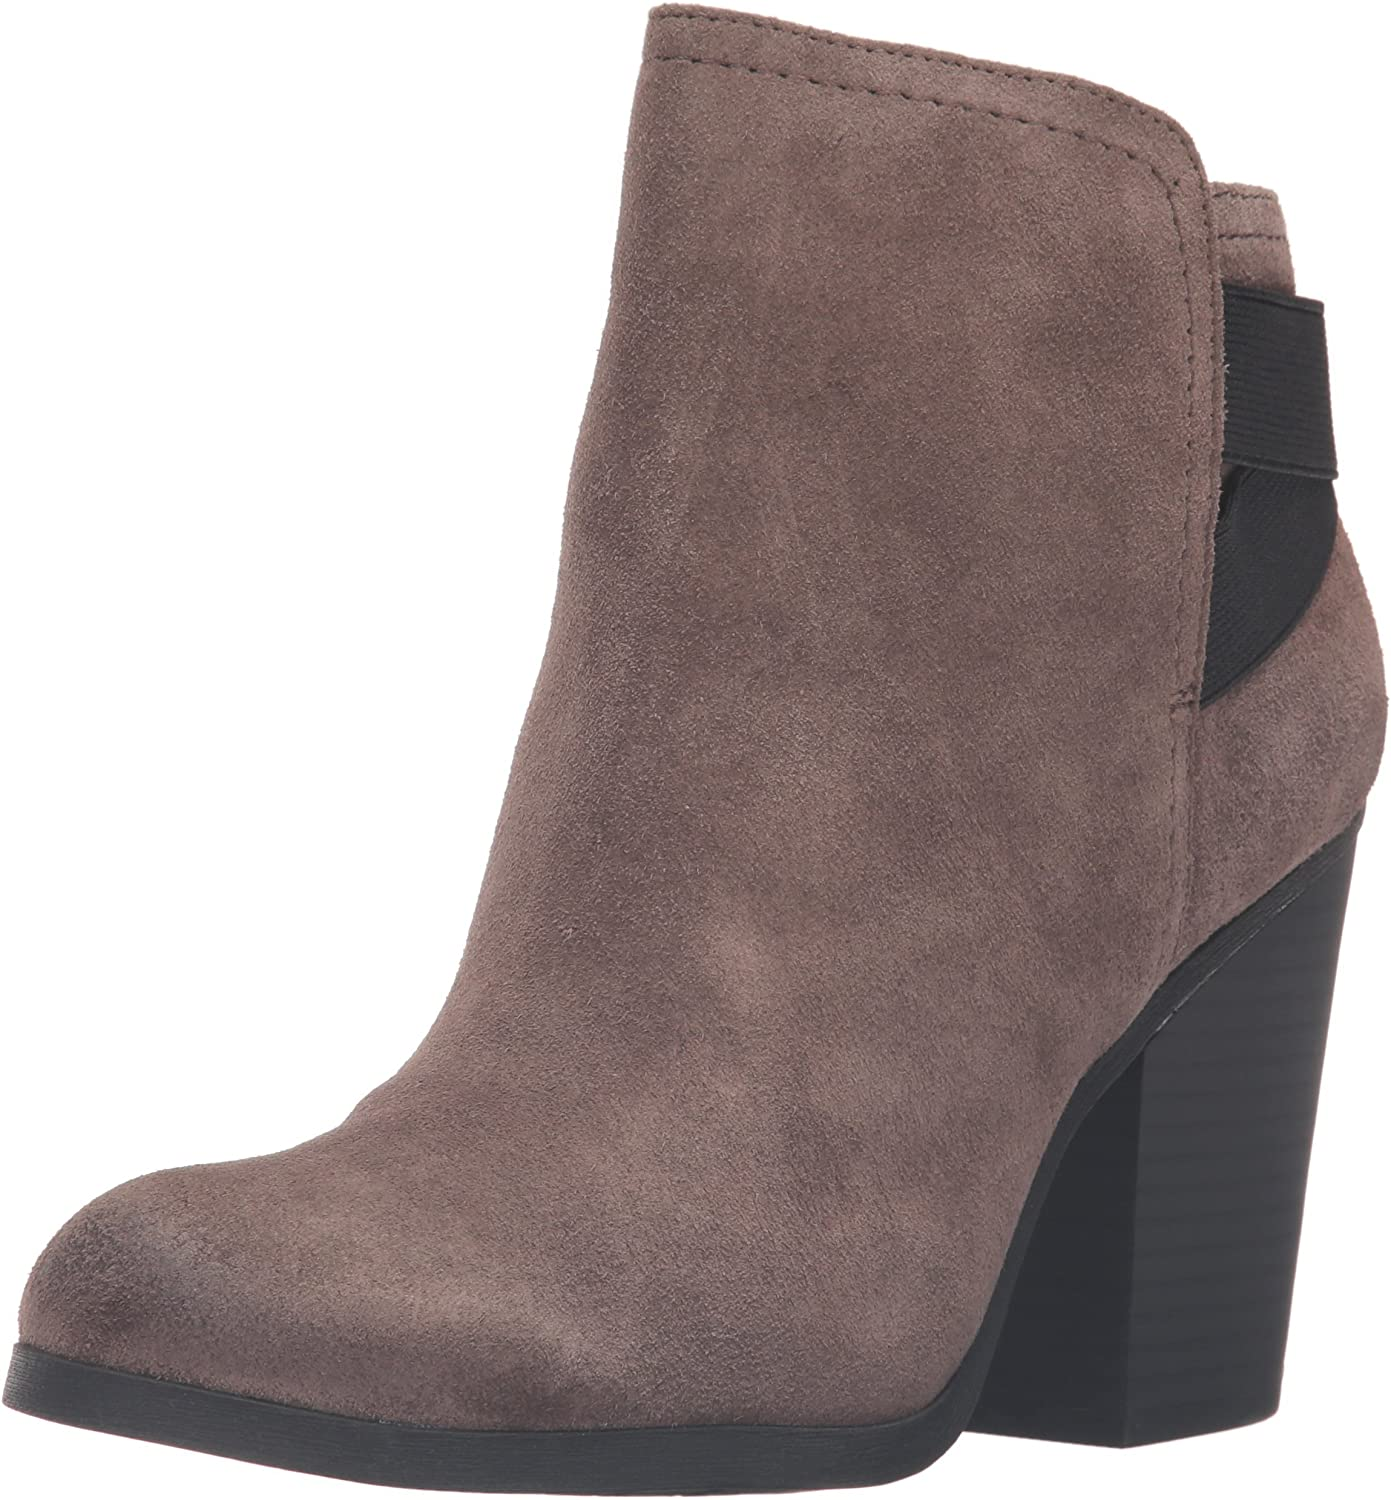 Kenneth Cole REACTION Women's Might Make It Ankle Bootie